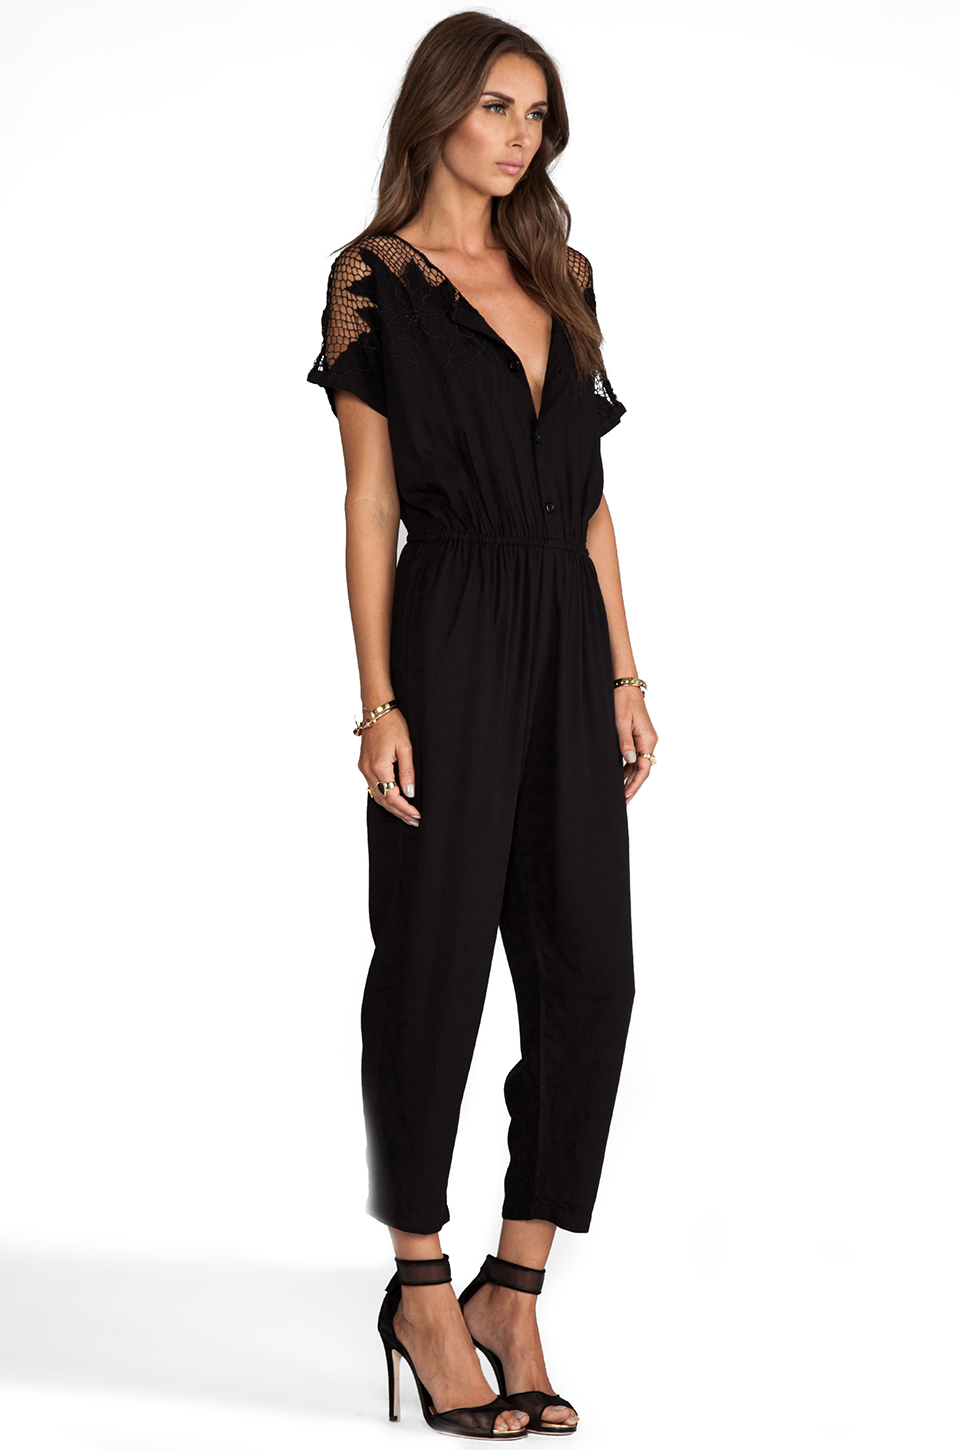 Lyst - Jens Pirate Booty Adventure Cat Suit In Black In Black-9450